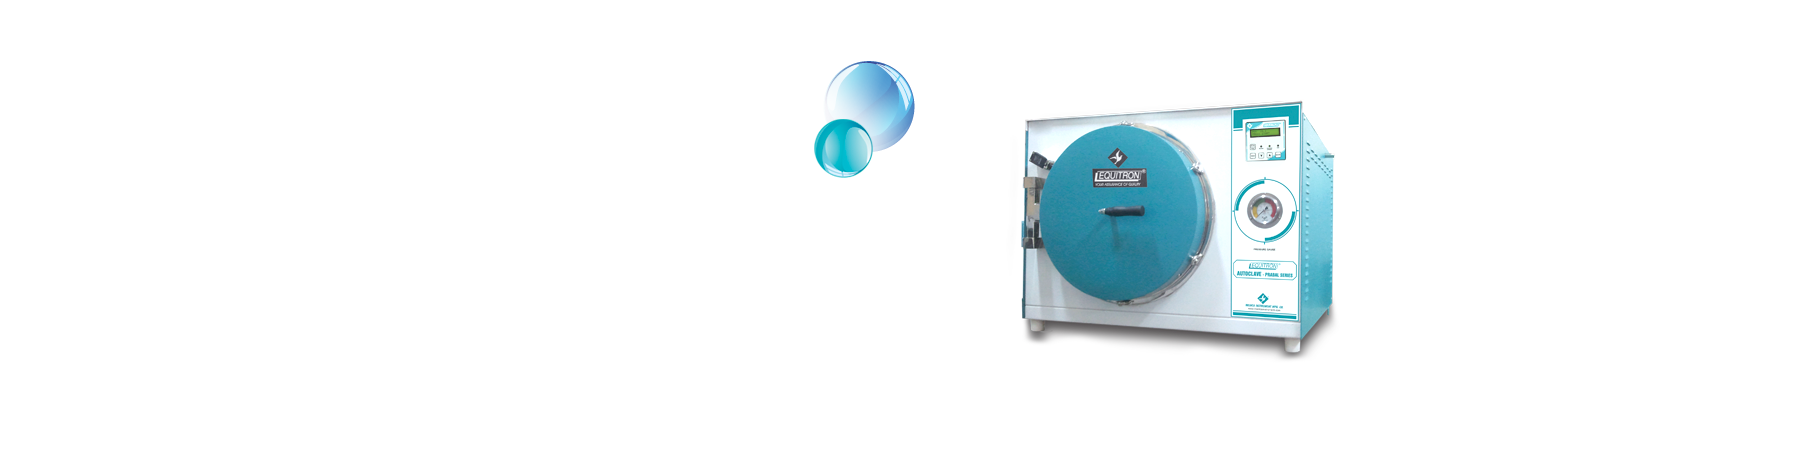 Autoclave PRABAL Series